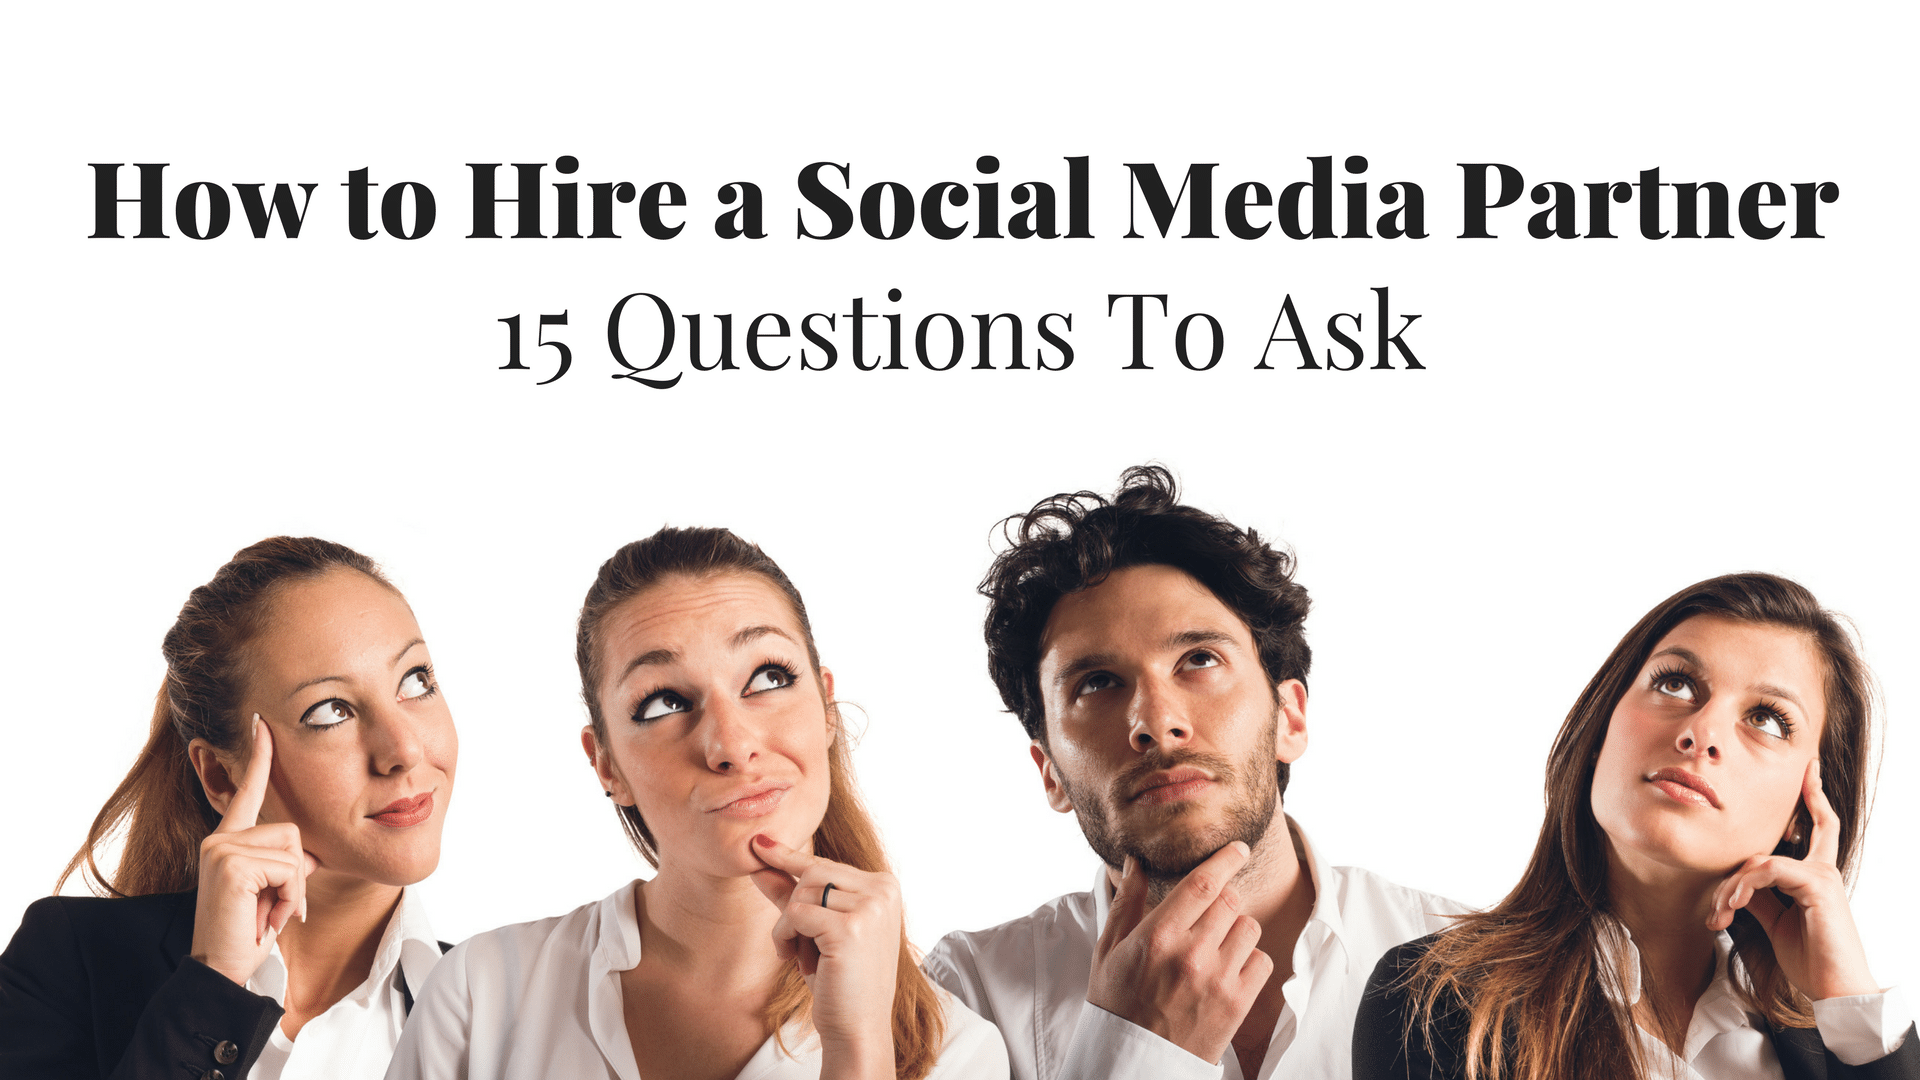 Video: Hiring a Social Media Firm? 15 Important Questions to Ask!